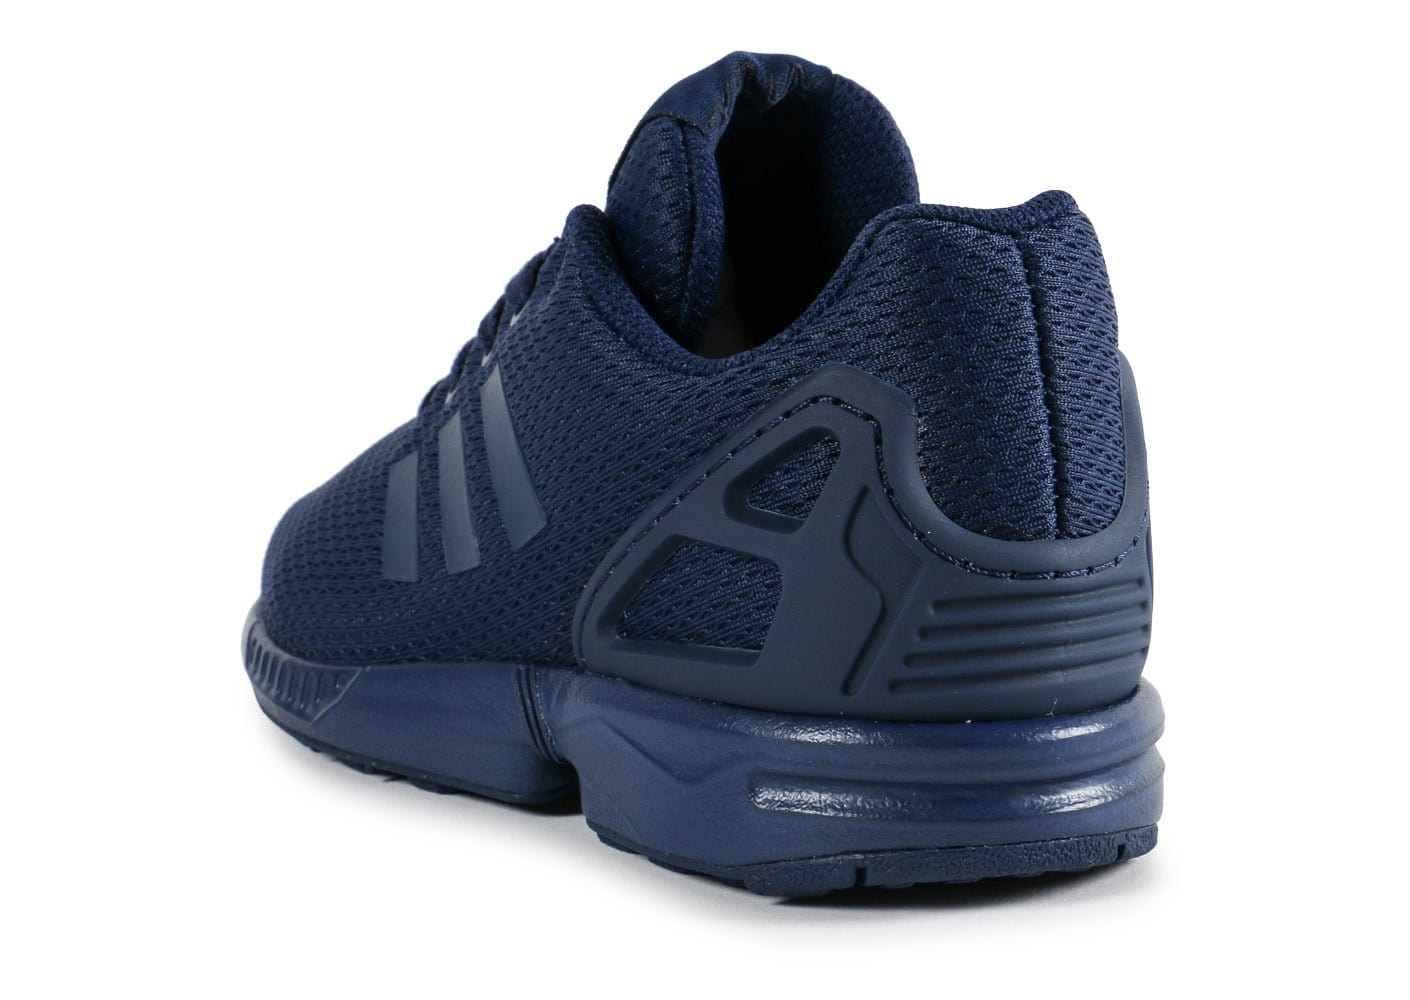 Chaussures Adidas ZX Flux 40 bleues Casual enfant ddSh6B3Vk